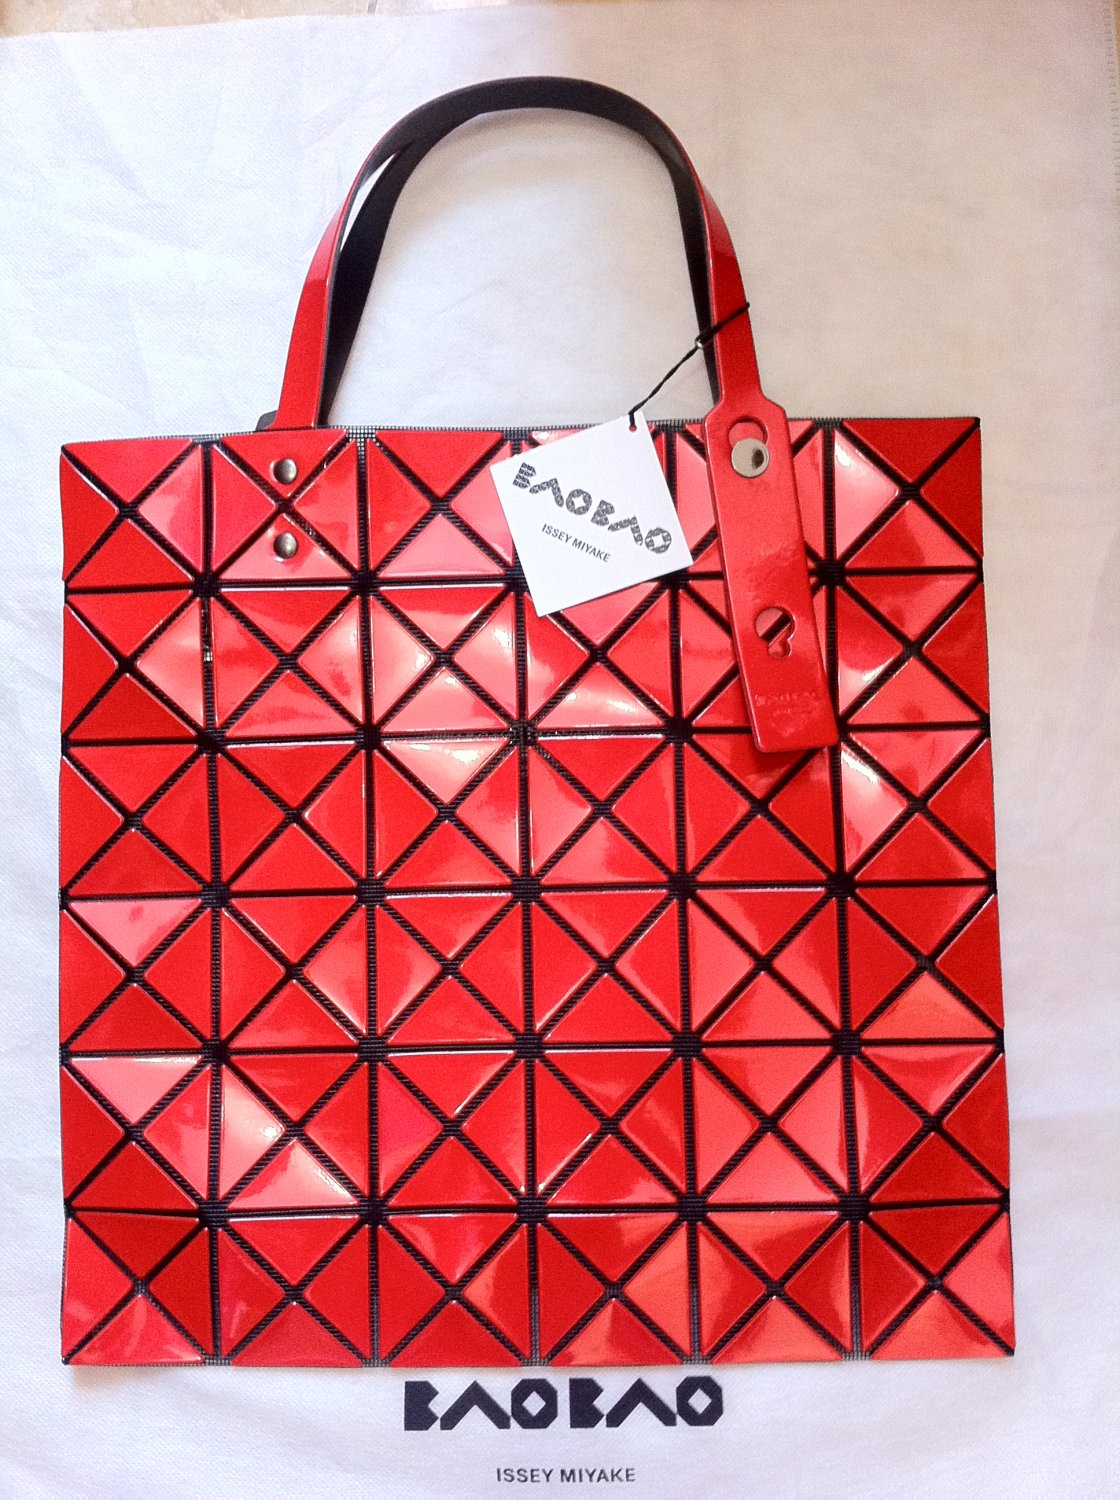 Japanese designer BAO BAO BAOBAO Issey Miyake Lucent Red Tote Shoulder Bag  100% Authentic with tag 72a56fe3d8db0